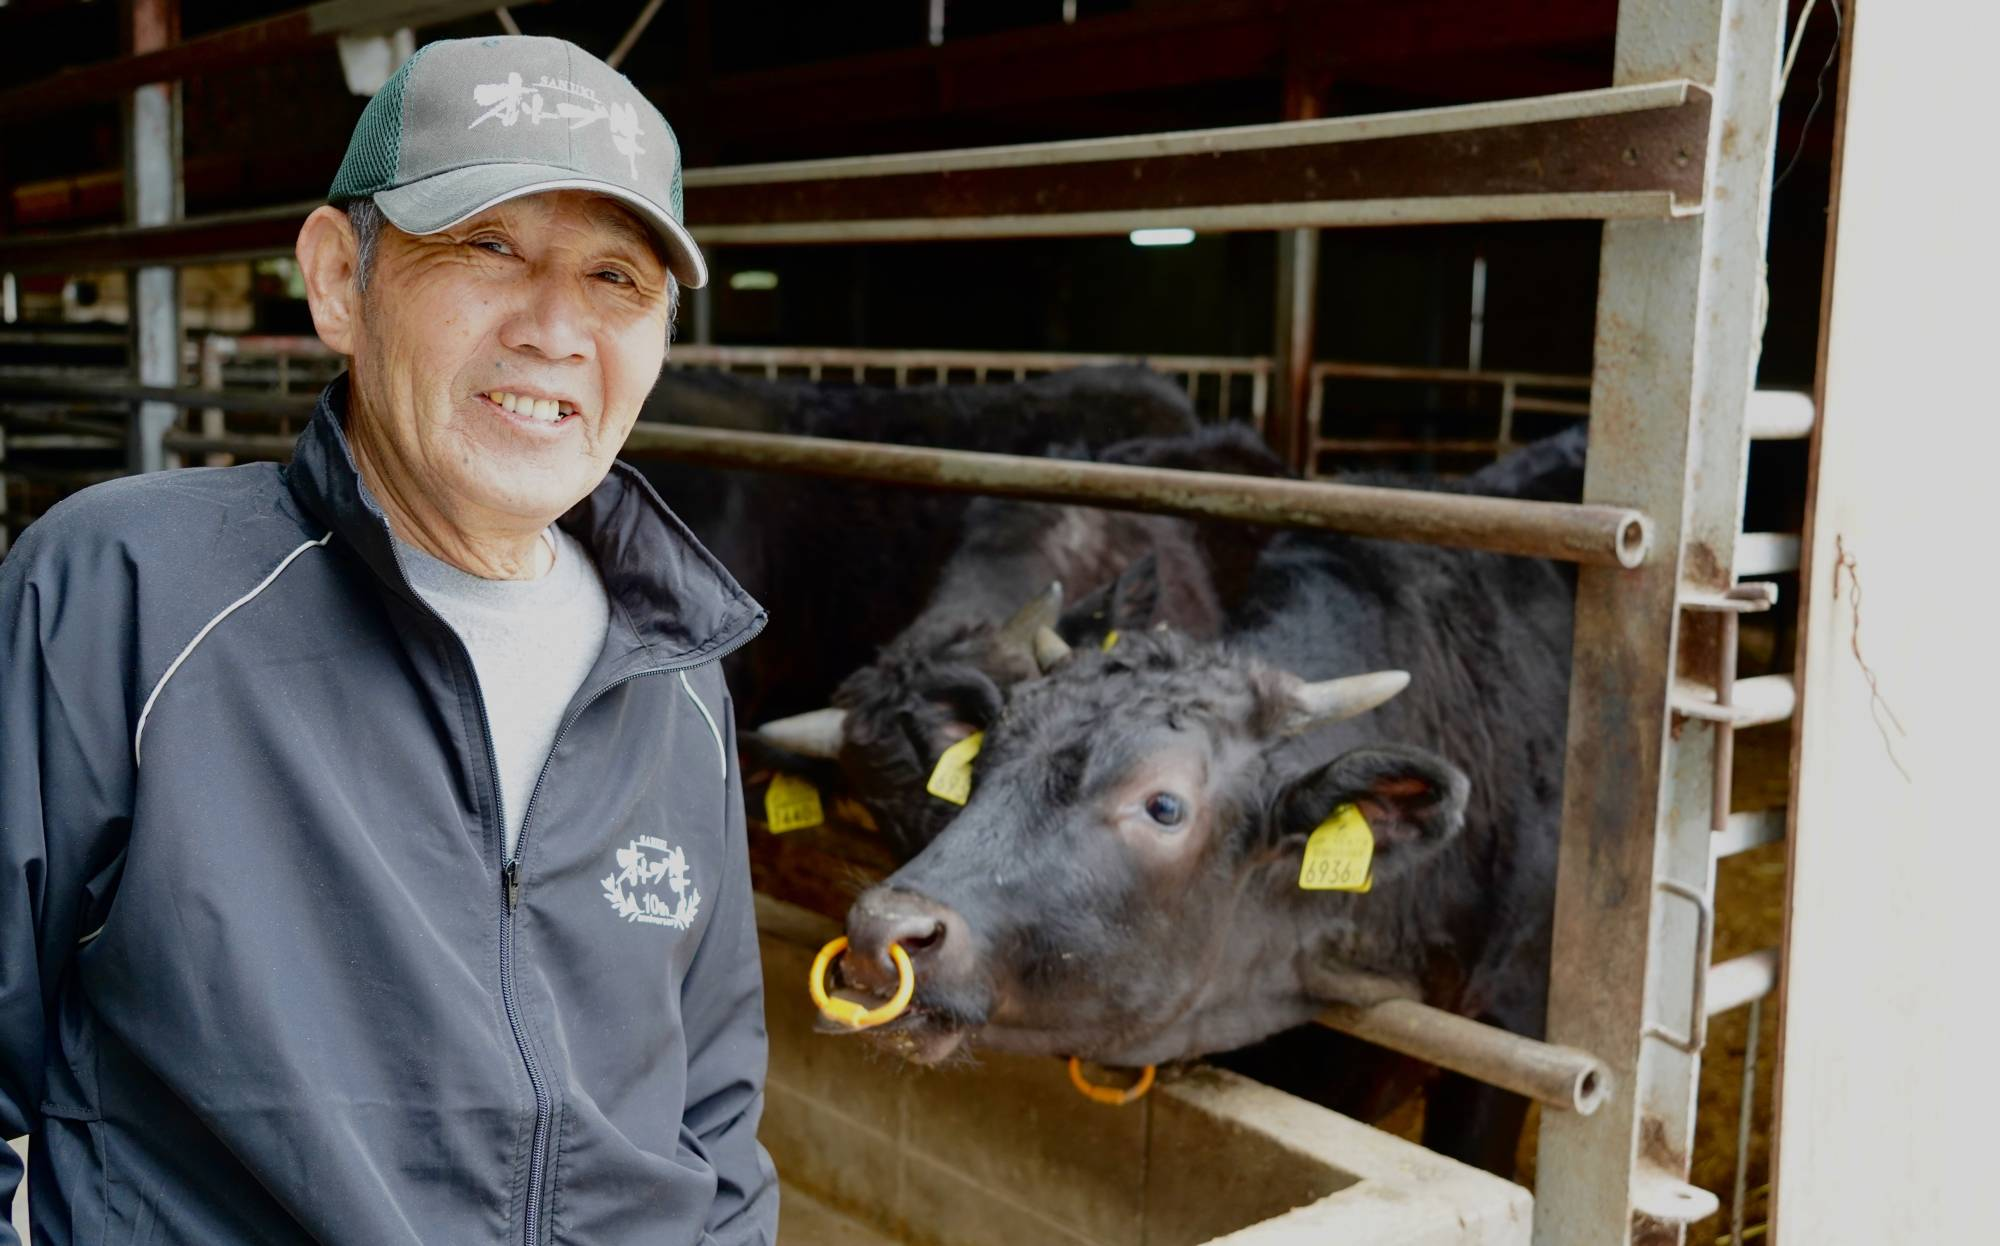 Island-grown, island-fed: Masaki Ishii supplements the feed of his 25-head herd of black wagyu cattle with the lees from Shodoshima's olive oil production. | ROBBIE SWINNERTON